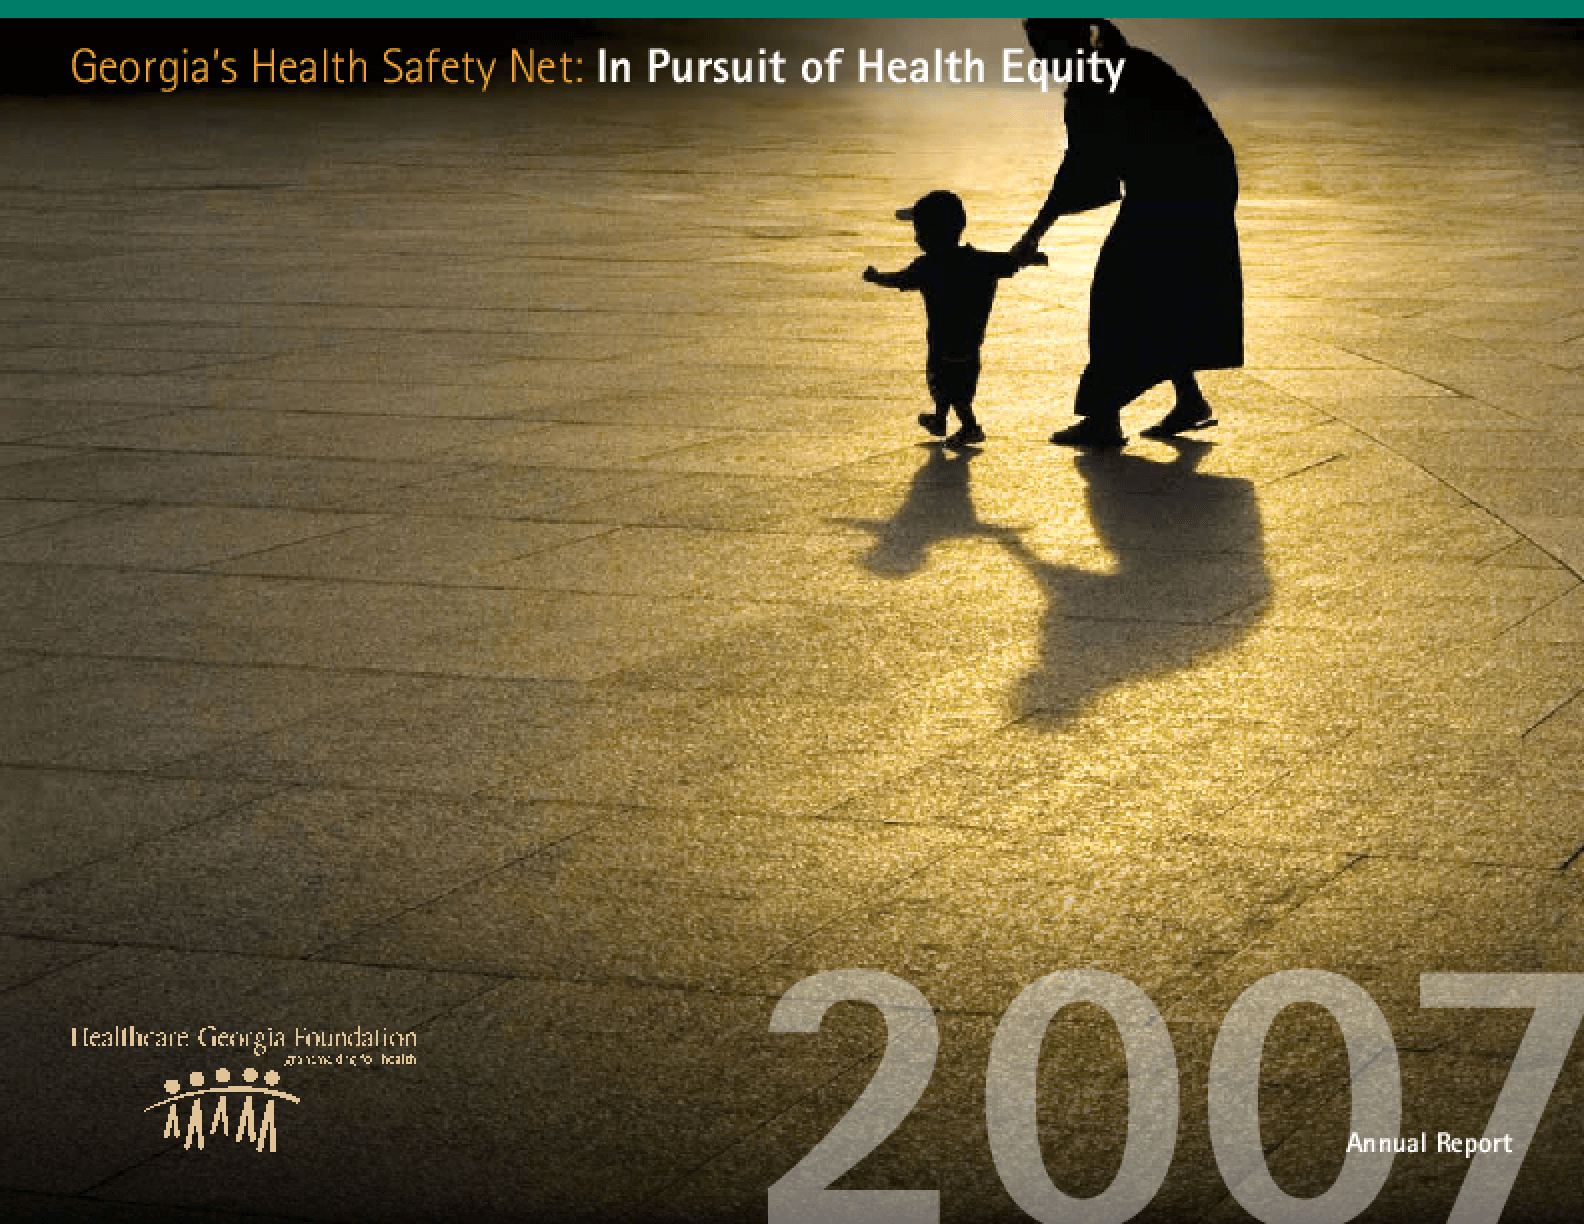 Healthcare Georgia Foundation - 2007 Annual Report: Georgia's Health Safety Net: In Pursuit of Health Equity